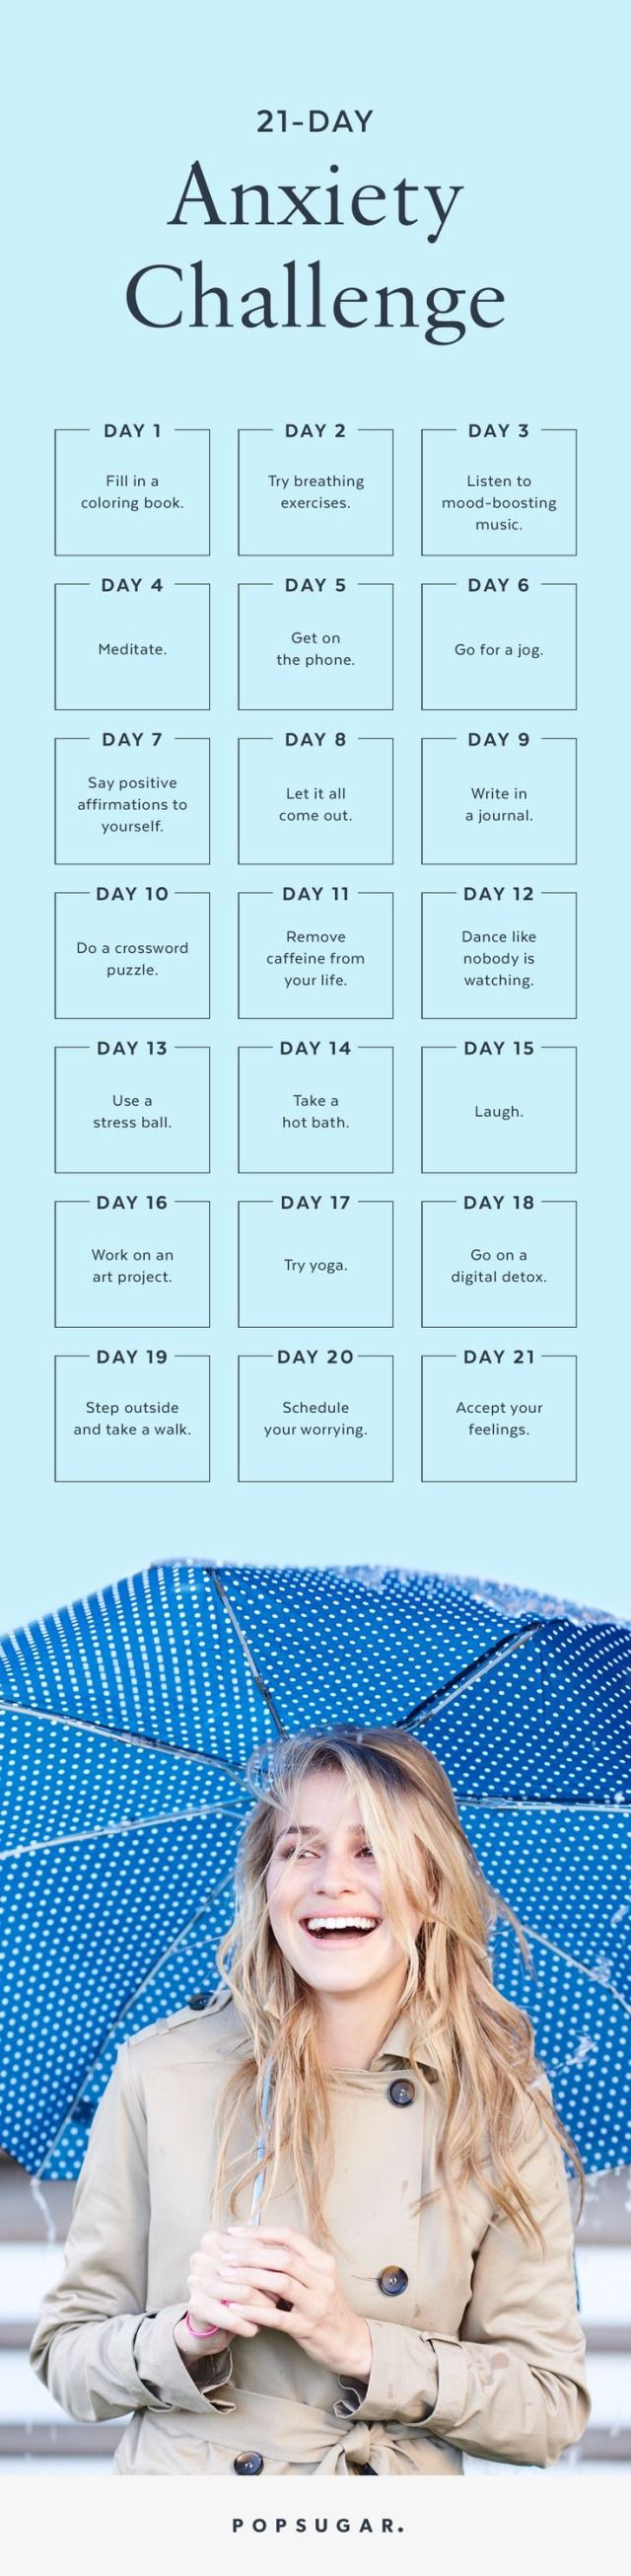 Feeling stressed or anxious? Here's a 21-day challenge to help you get through it and on your way to stress-free living. (Step Exercises Lifestyle)